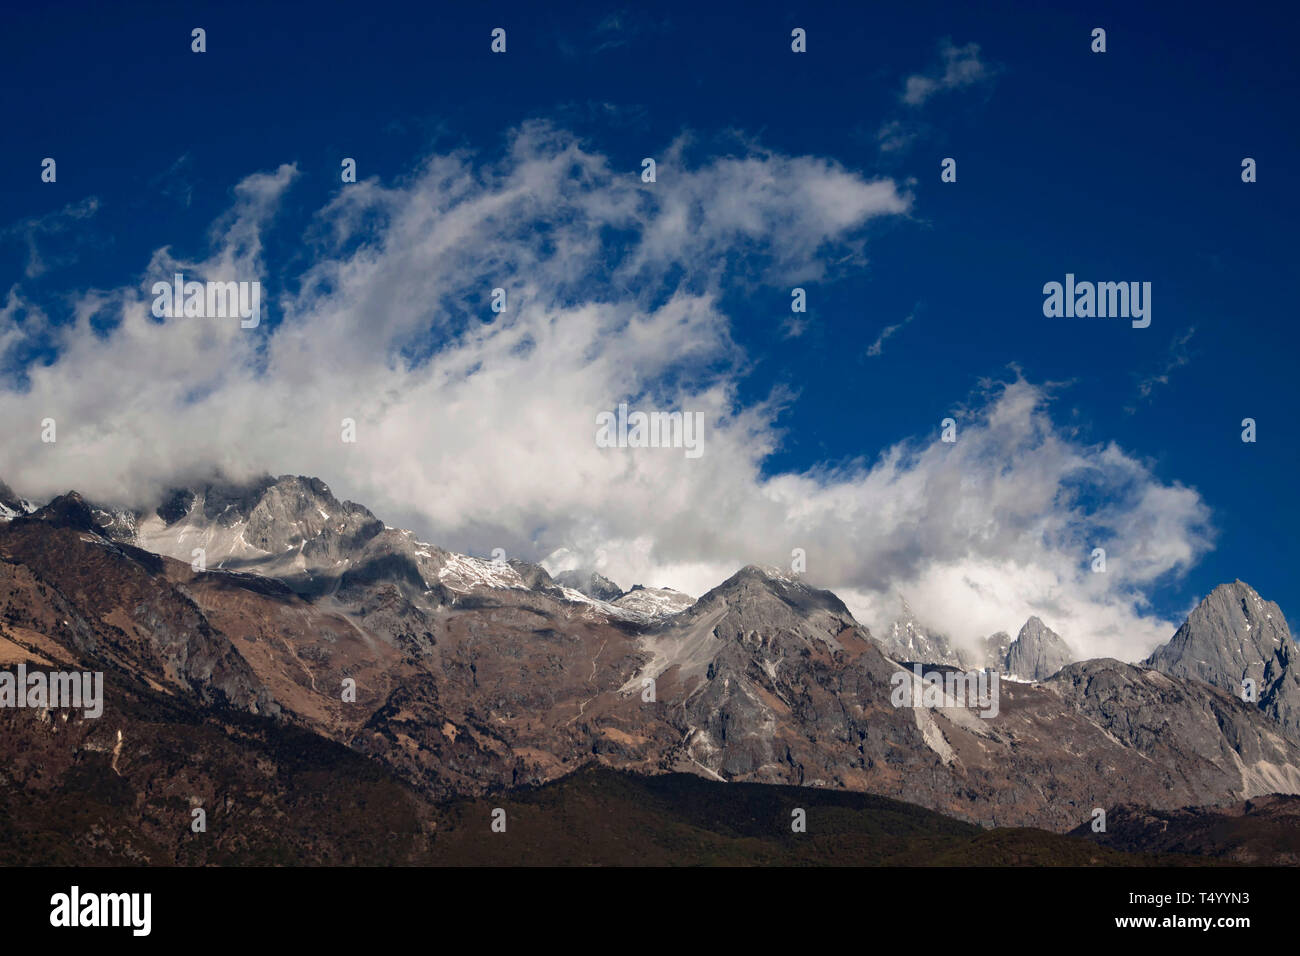 Yulong Xueshan, Jade Dragon Snow Mountains is a mountain range near Lijiang in the northwest of Yunnan Province in the People's Republic of China Stock Photo